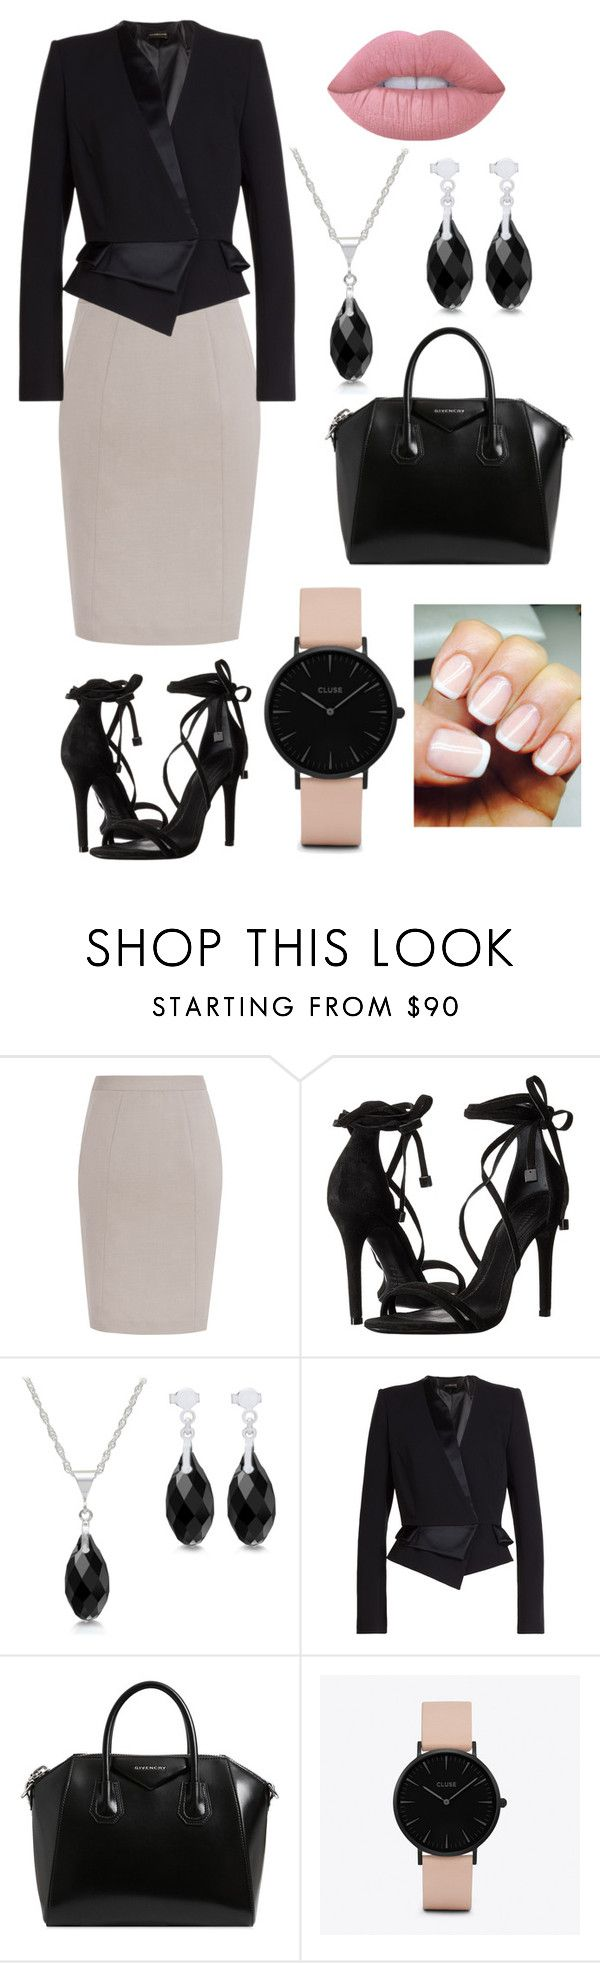 """Black Elegance"" by alphashe on Polyvore featuring Schutz, Alexandre Vauthier, Givenchy, CLUSE, Lime Crime, chic, black and formal"